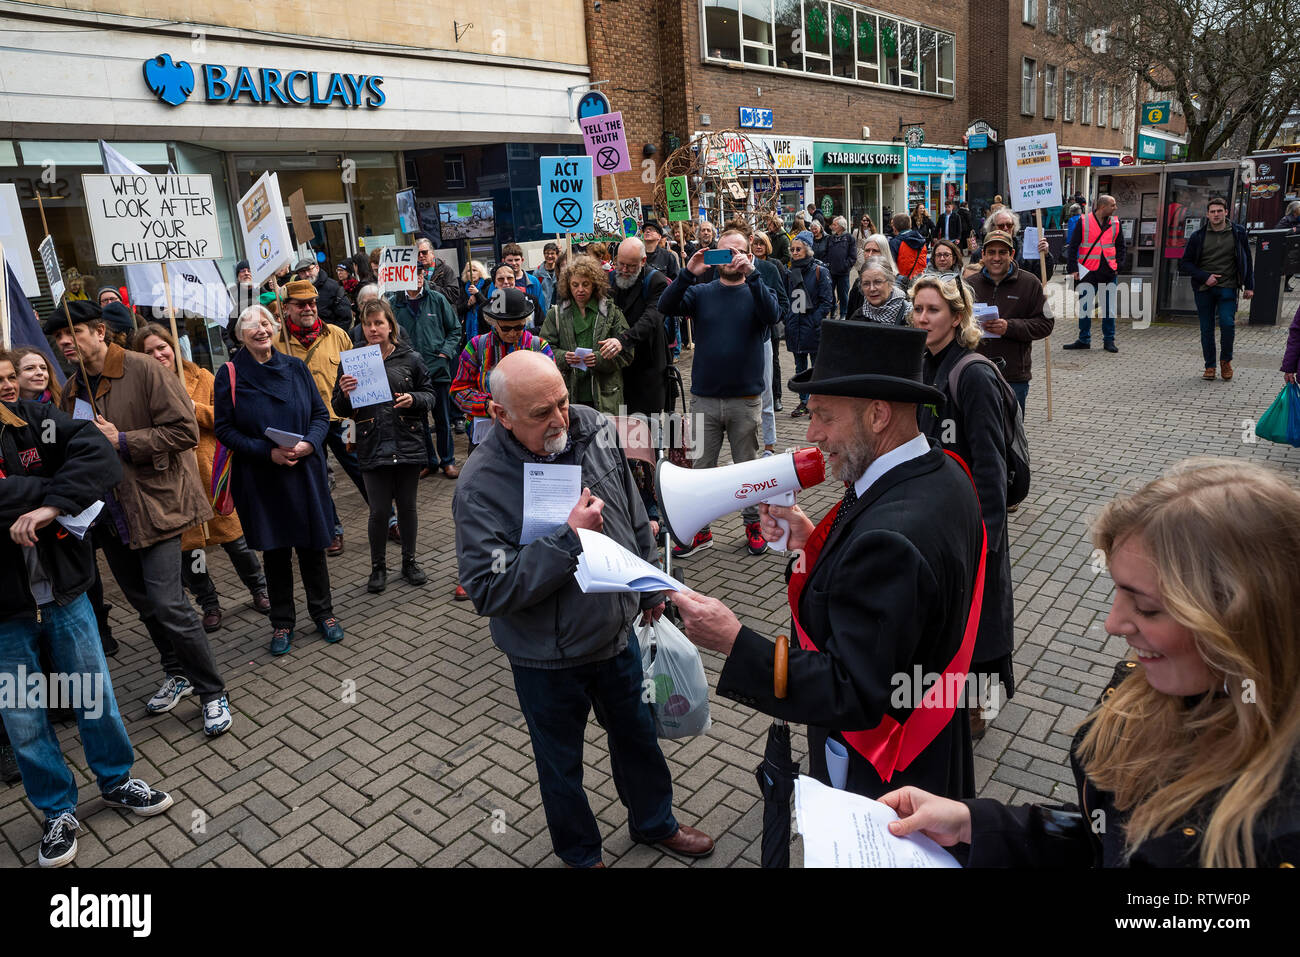 Canterbury, UK. 23rd February 2019. Supporters of the Canterbury Extinction Rebellion Group form up in the City Centre then take part in a symbolic funeral procession representing the death of plants, animals, humans and the planet due to the climate crisis, loss or life. The protest culminated in a swarming action blocking St. Peters Place. Police were present but didn't interfere, there were no arrests. Credit: Stephen Bell/Alamy Live News Stock Photo